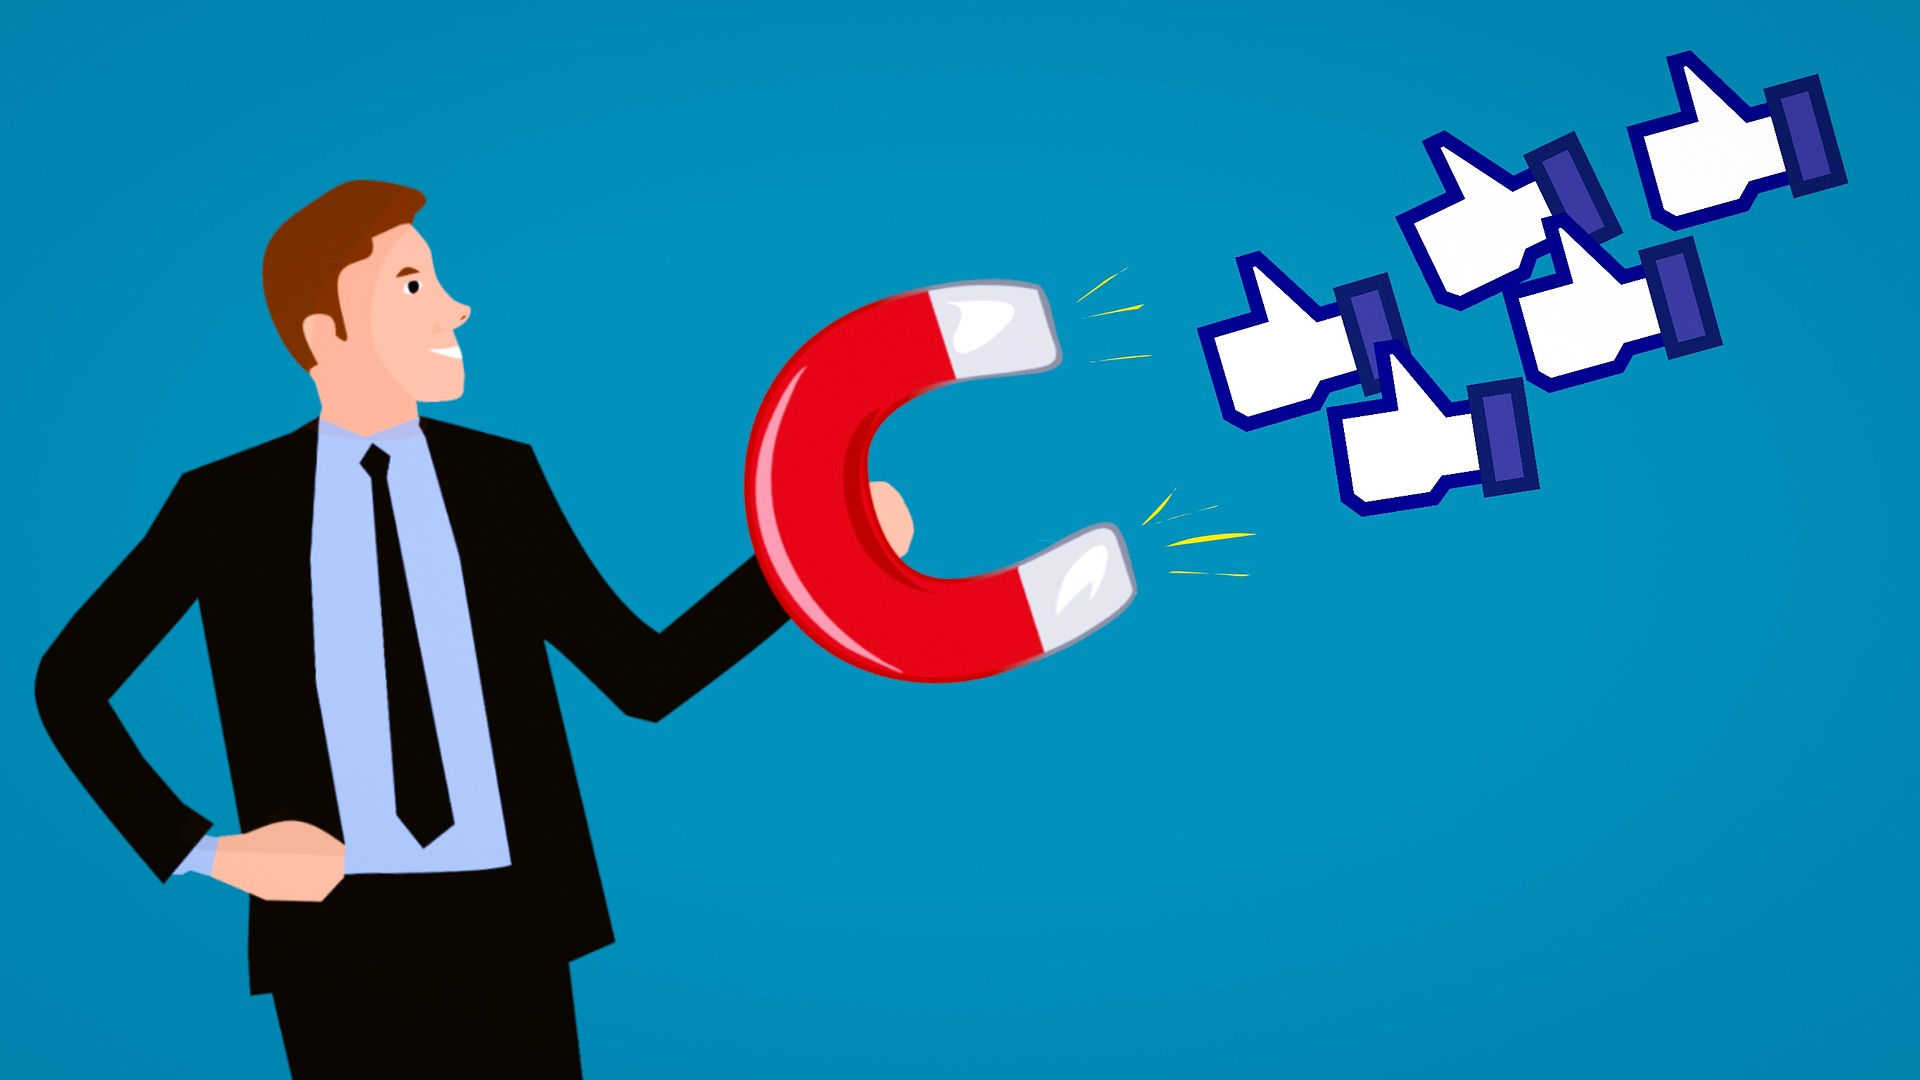 Facebook Fundamentals How To Invite Friends To Like Your Facebook